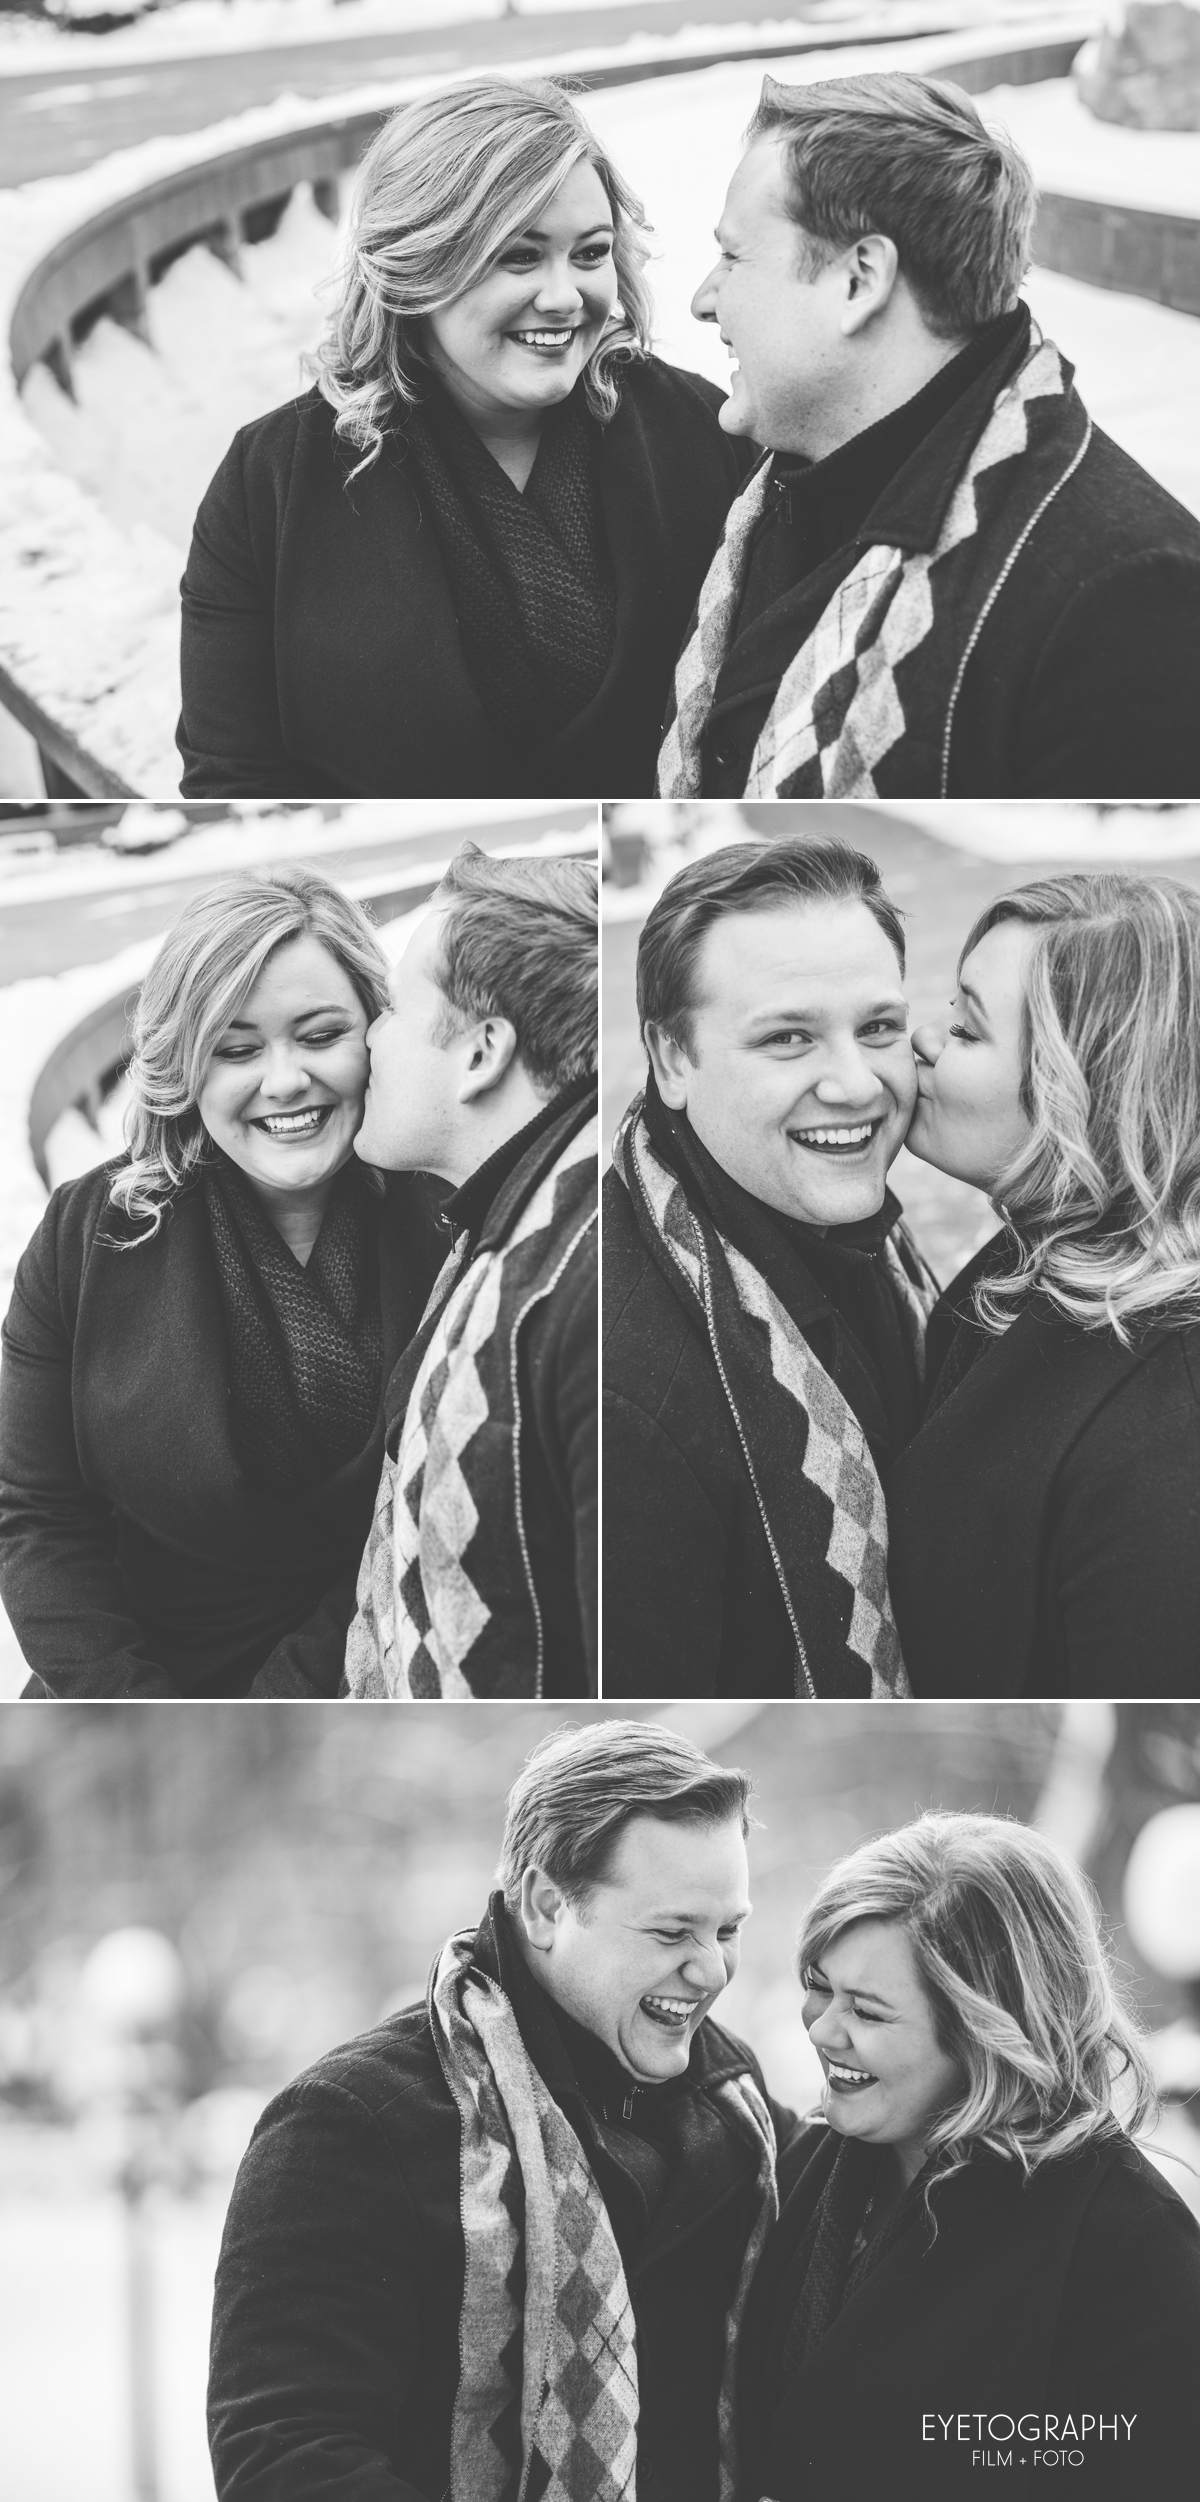 Eyetography Film + Foto - St. Paul Engagement Photography